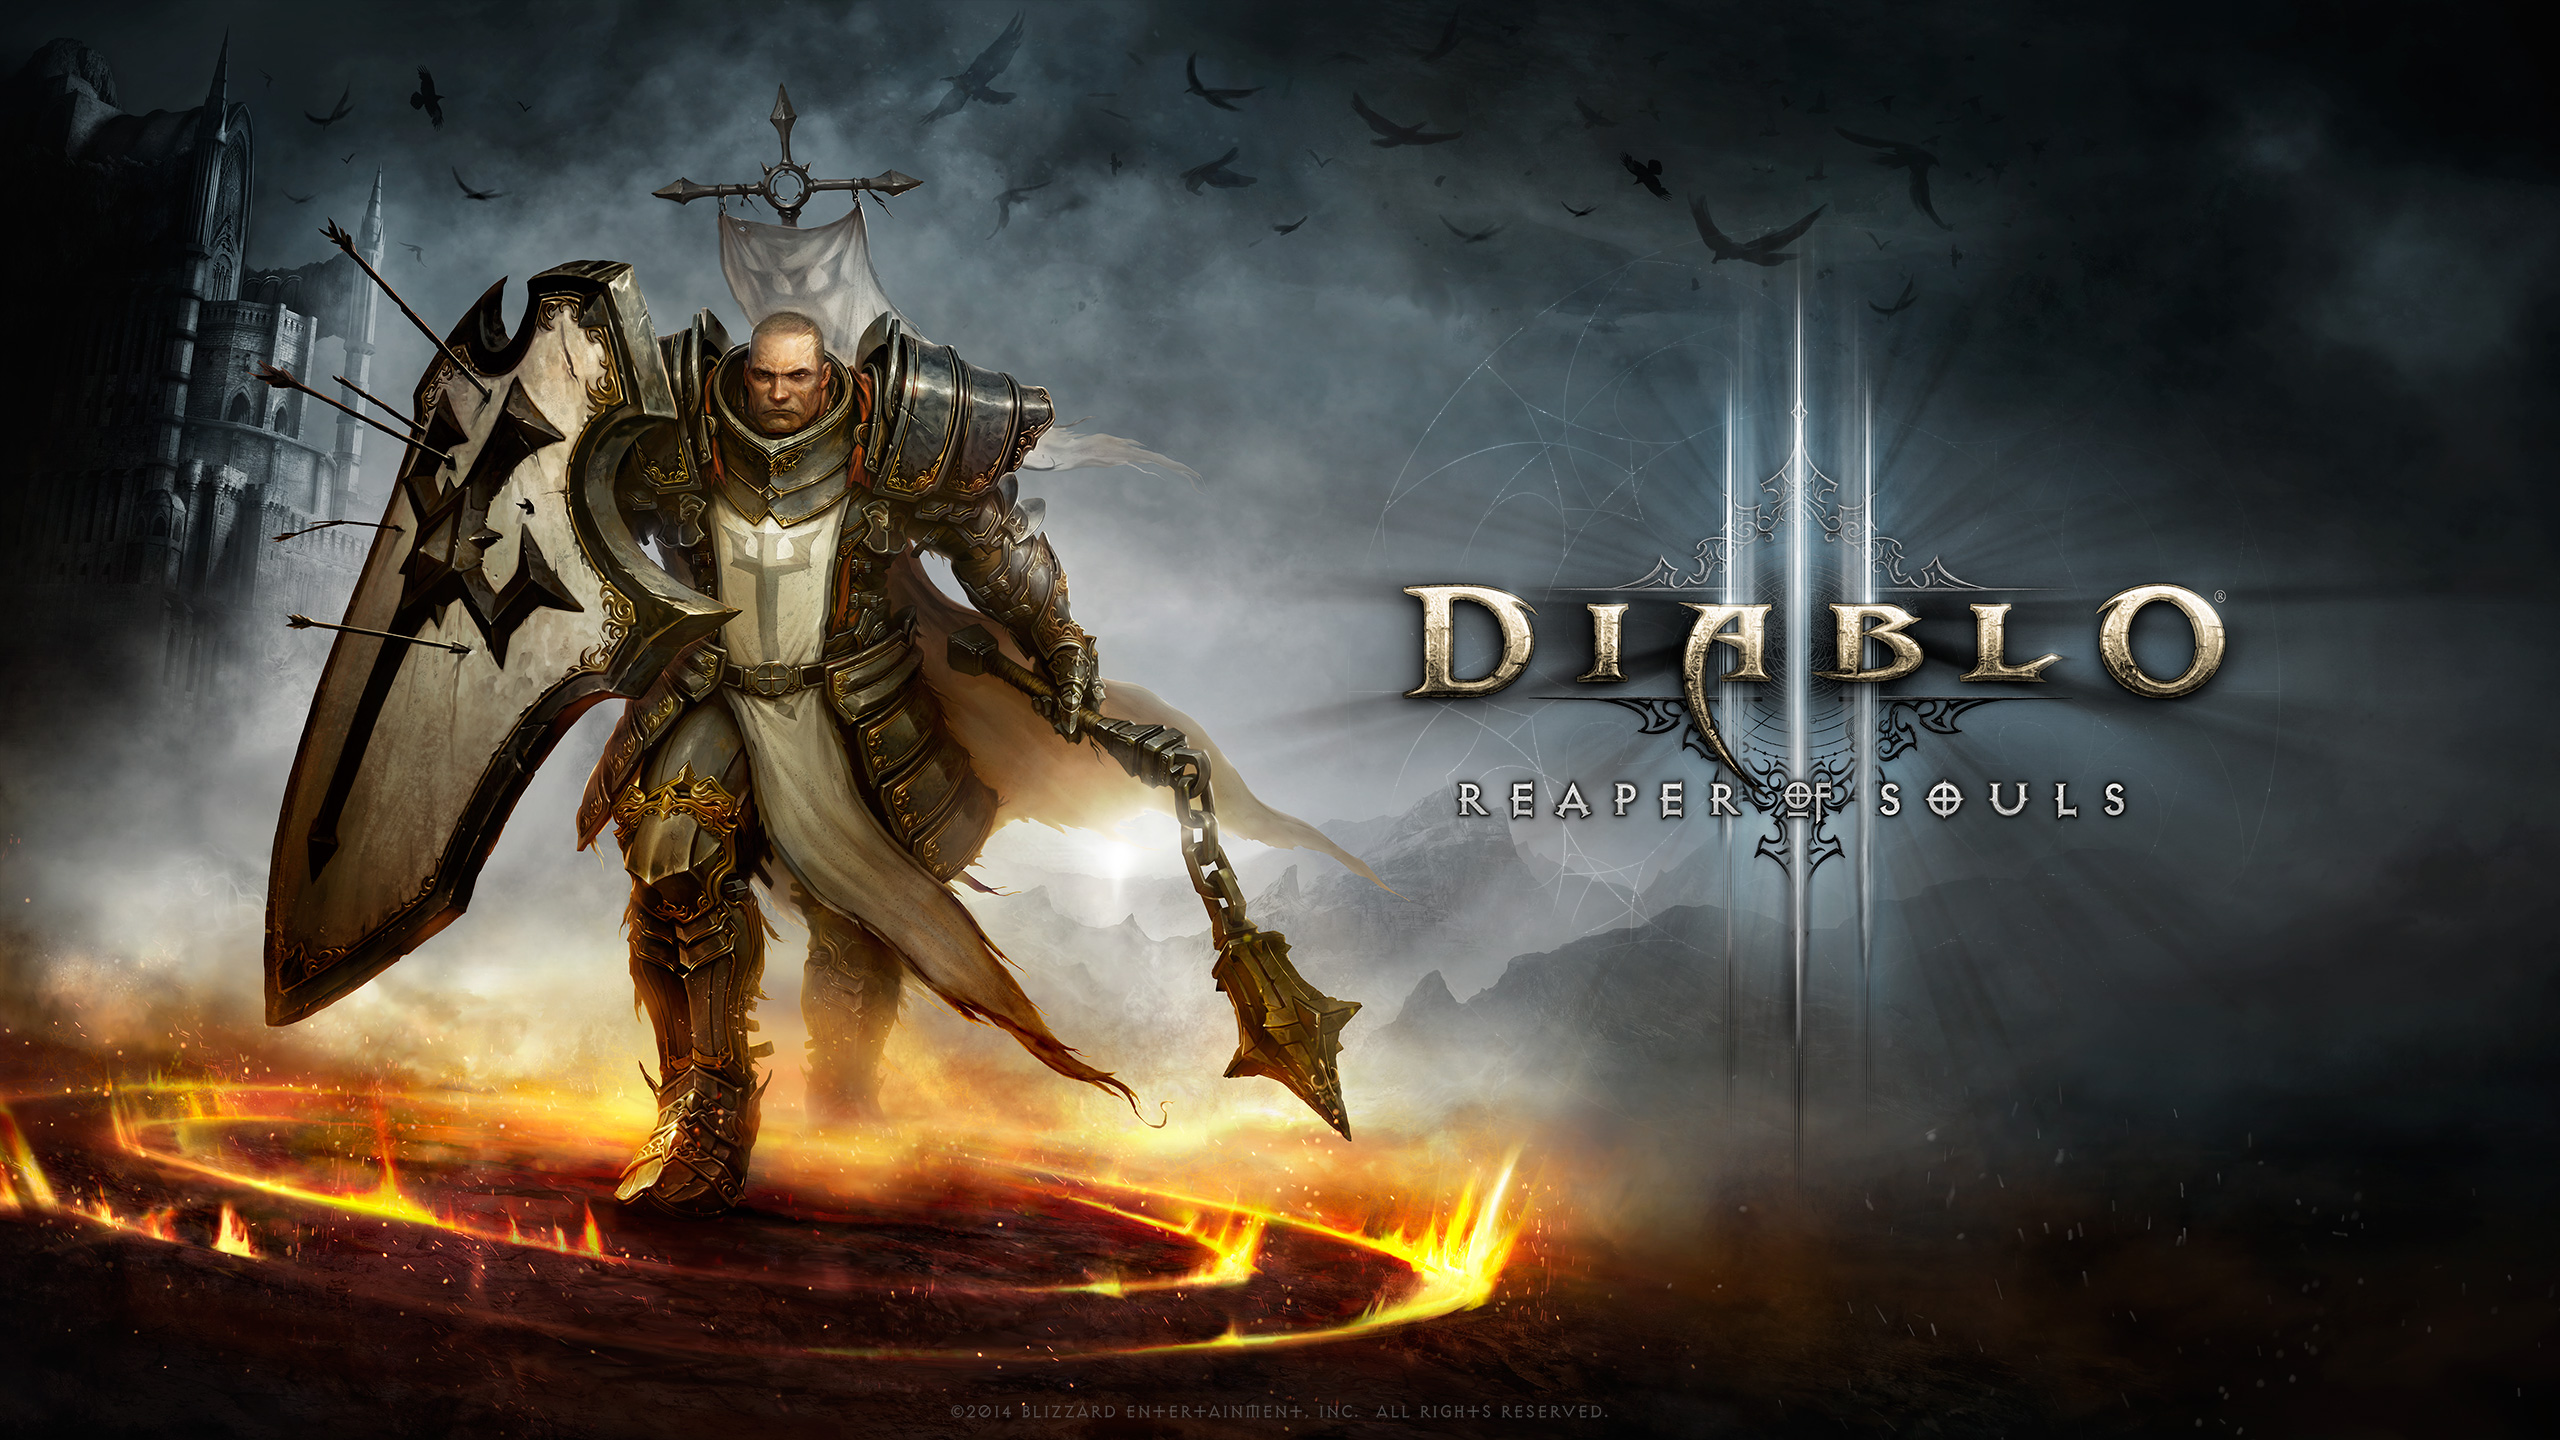 diablo wallpaper 2560x1440 - photo #15